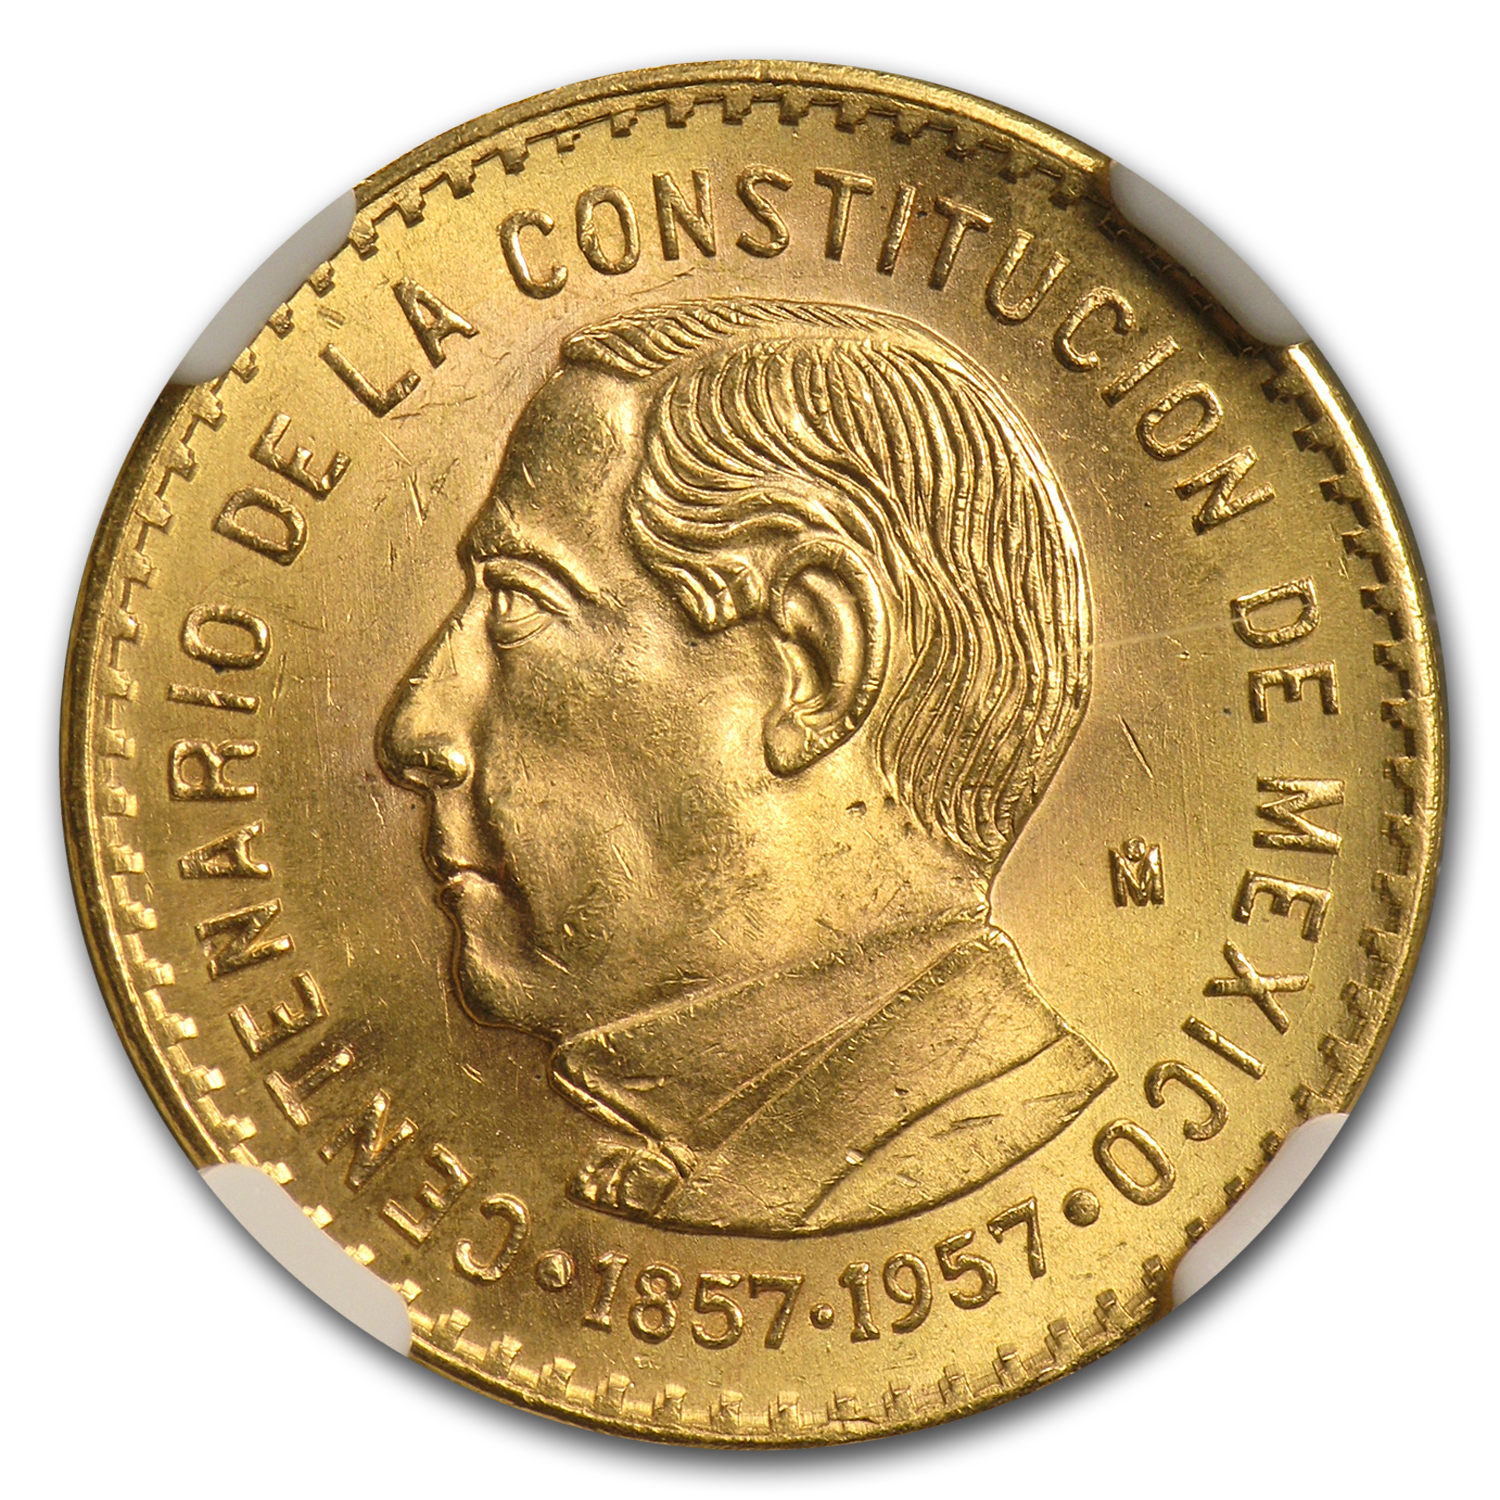 Mexico 1957 Centennial of the Constitution Gold Coin - MS-64 NGC